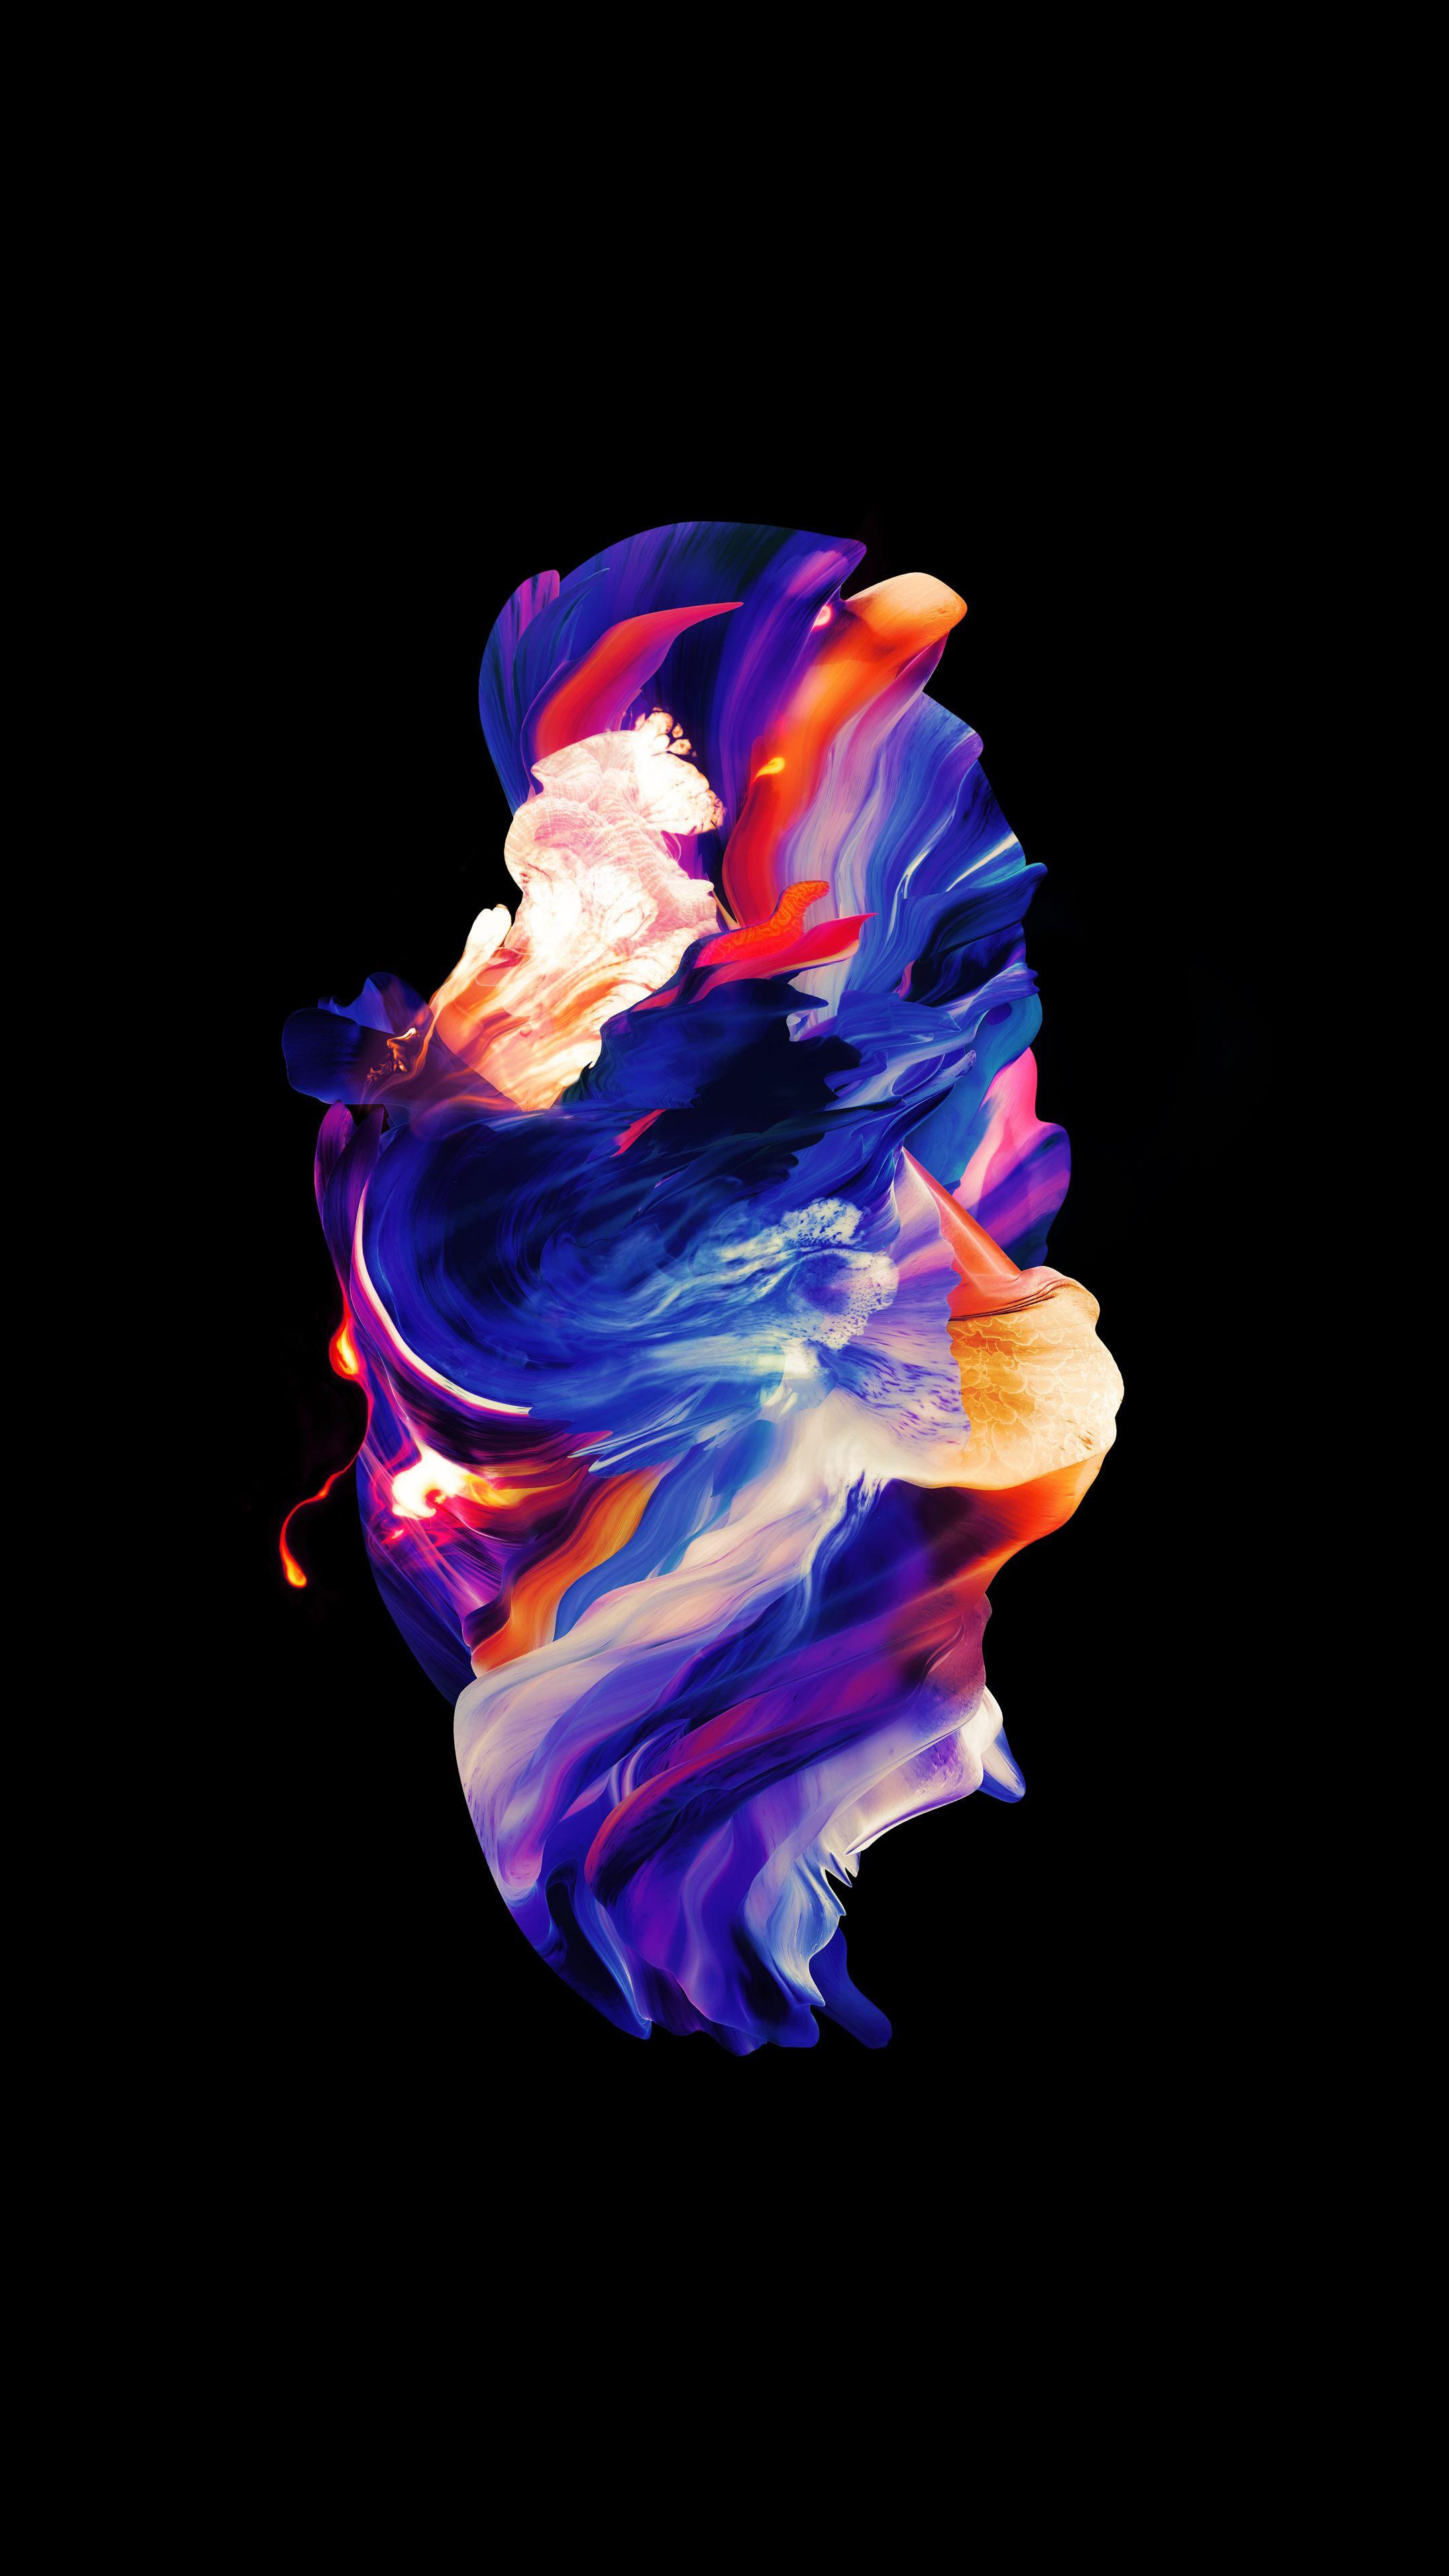 OnePlus 5 Wallpapers Amoled Black Edit 4k (2160x3840